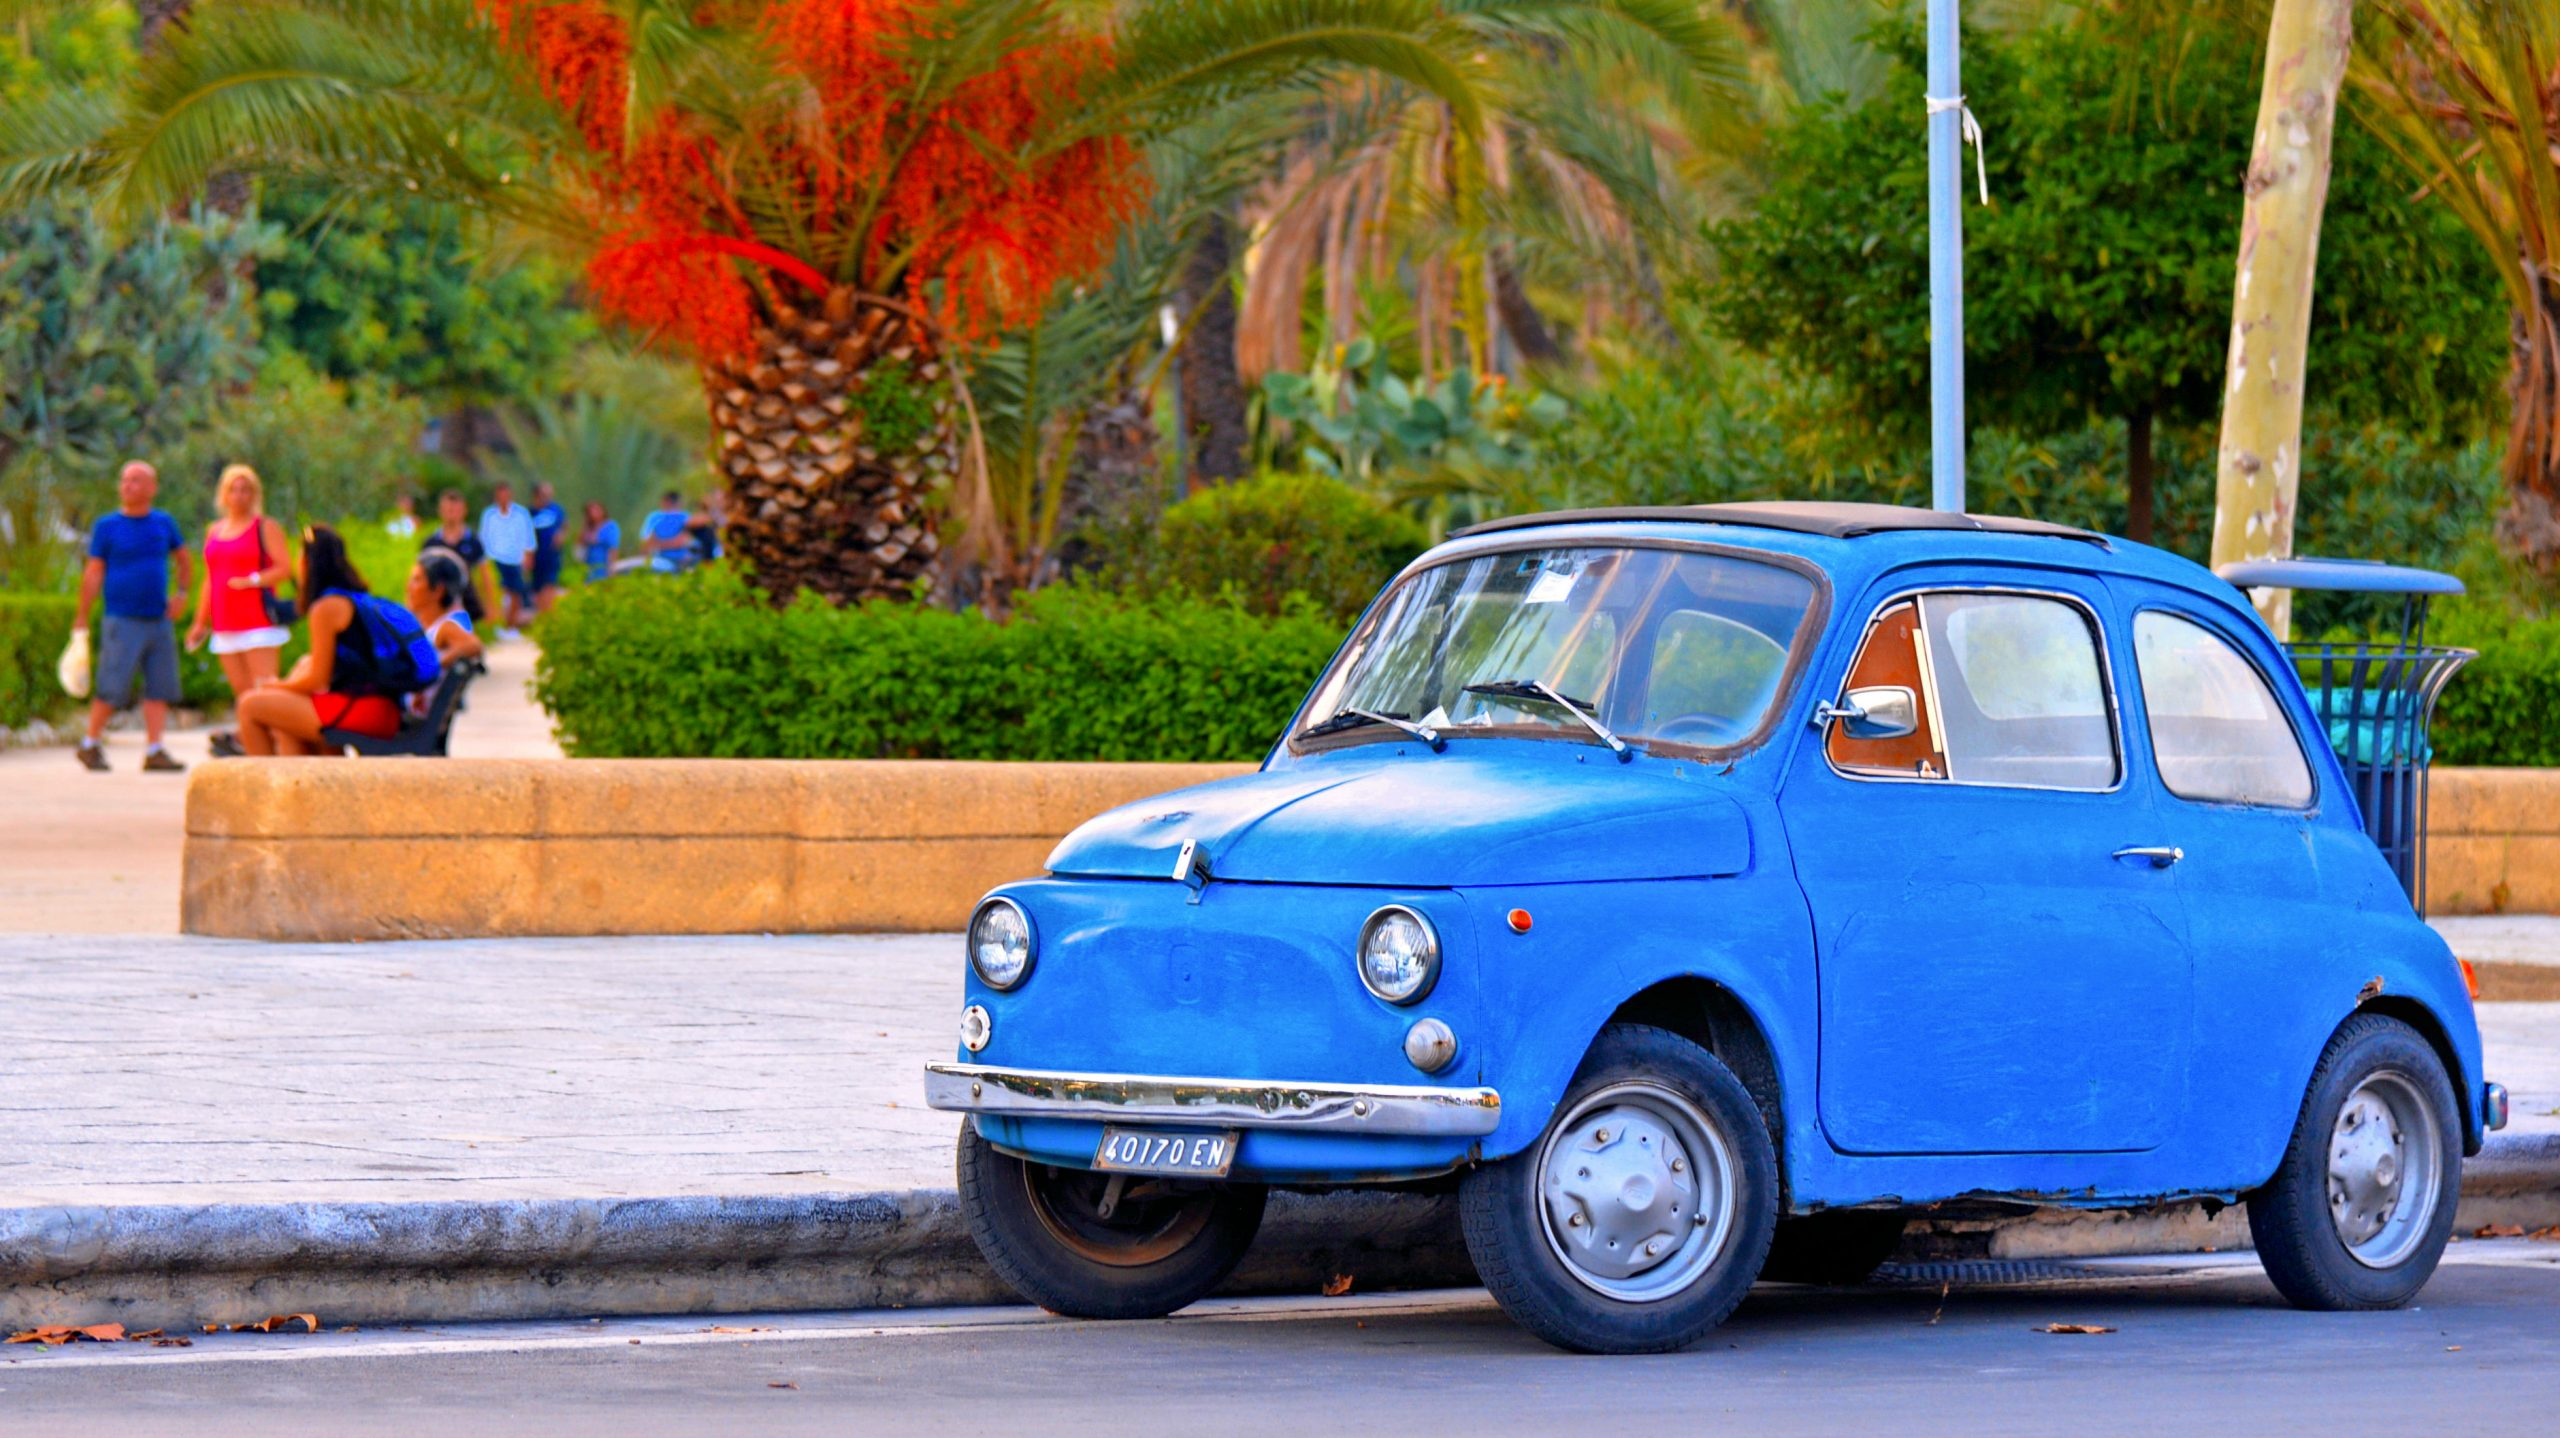 24.08.2018. Palermo, Sicily Italy - vintage blue car Fiat 500 on the  street in front of city park and people relaxing in Palermo in South Italy